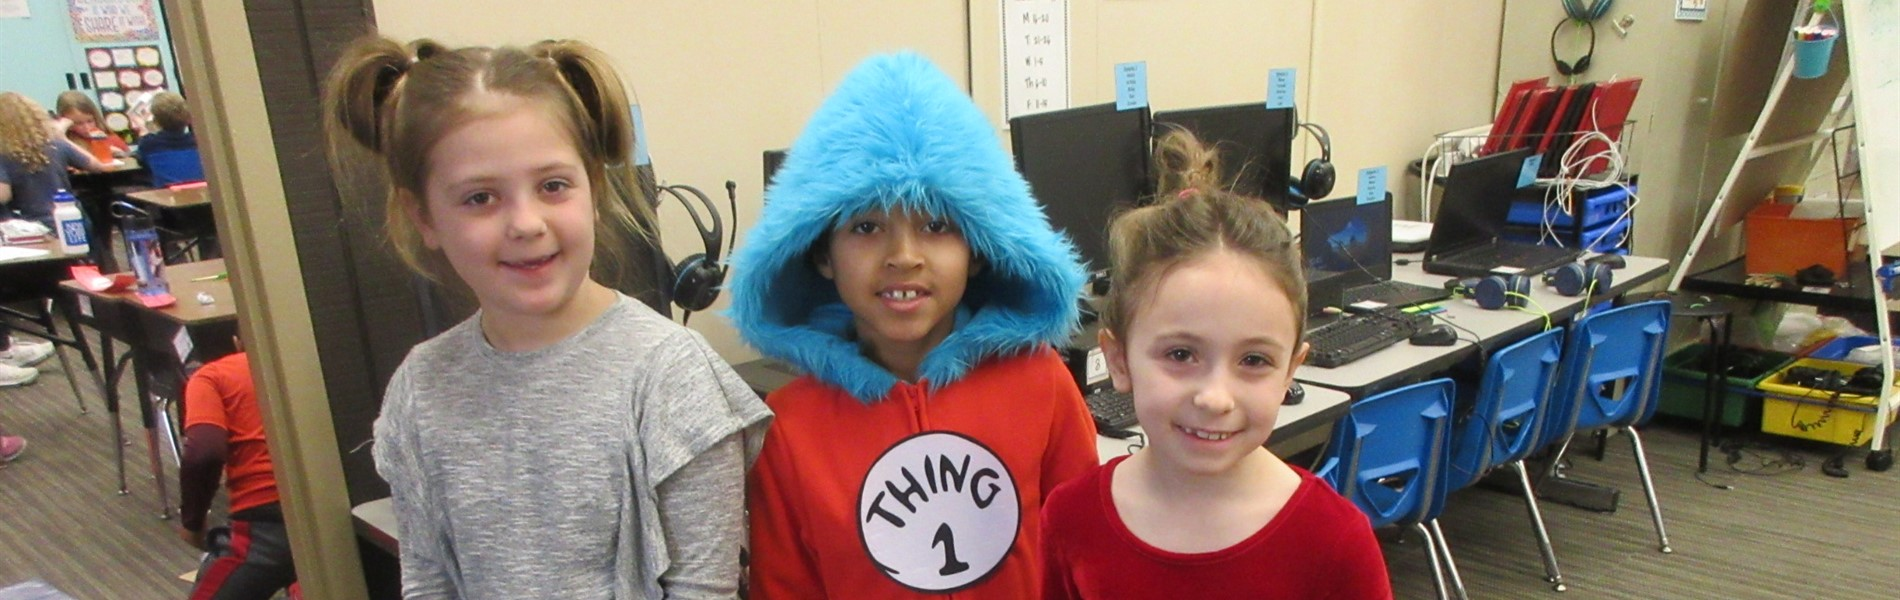 Students dressed up for Read Across America